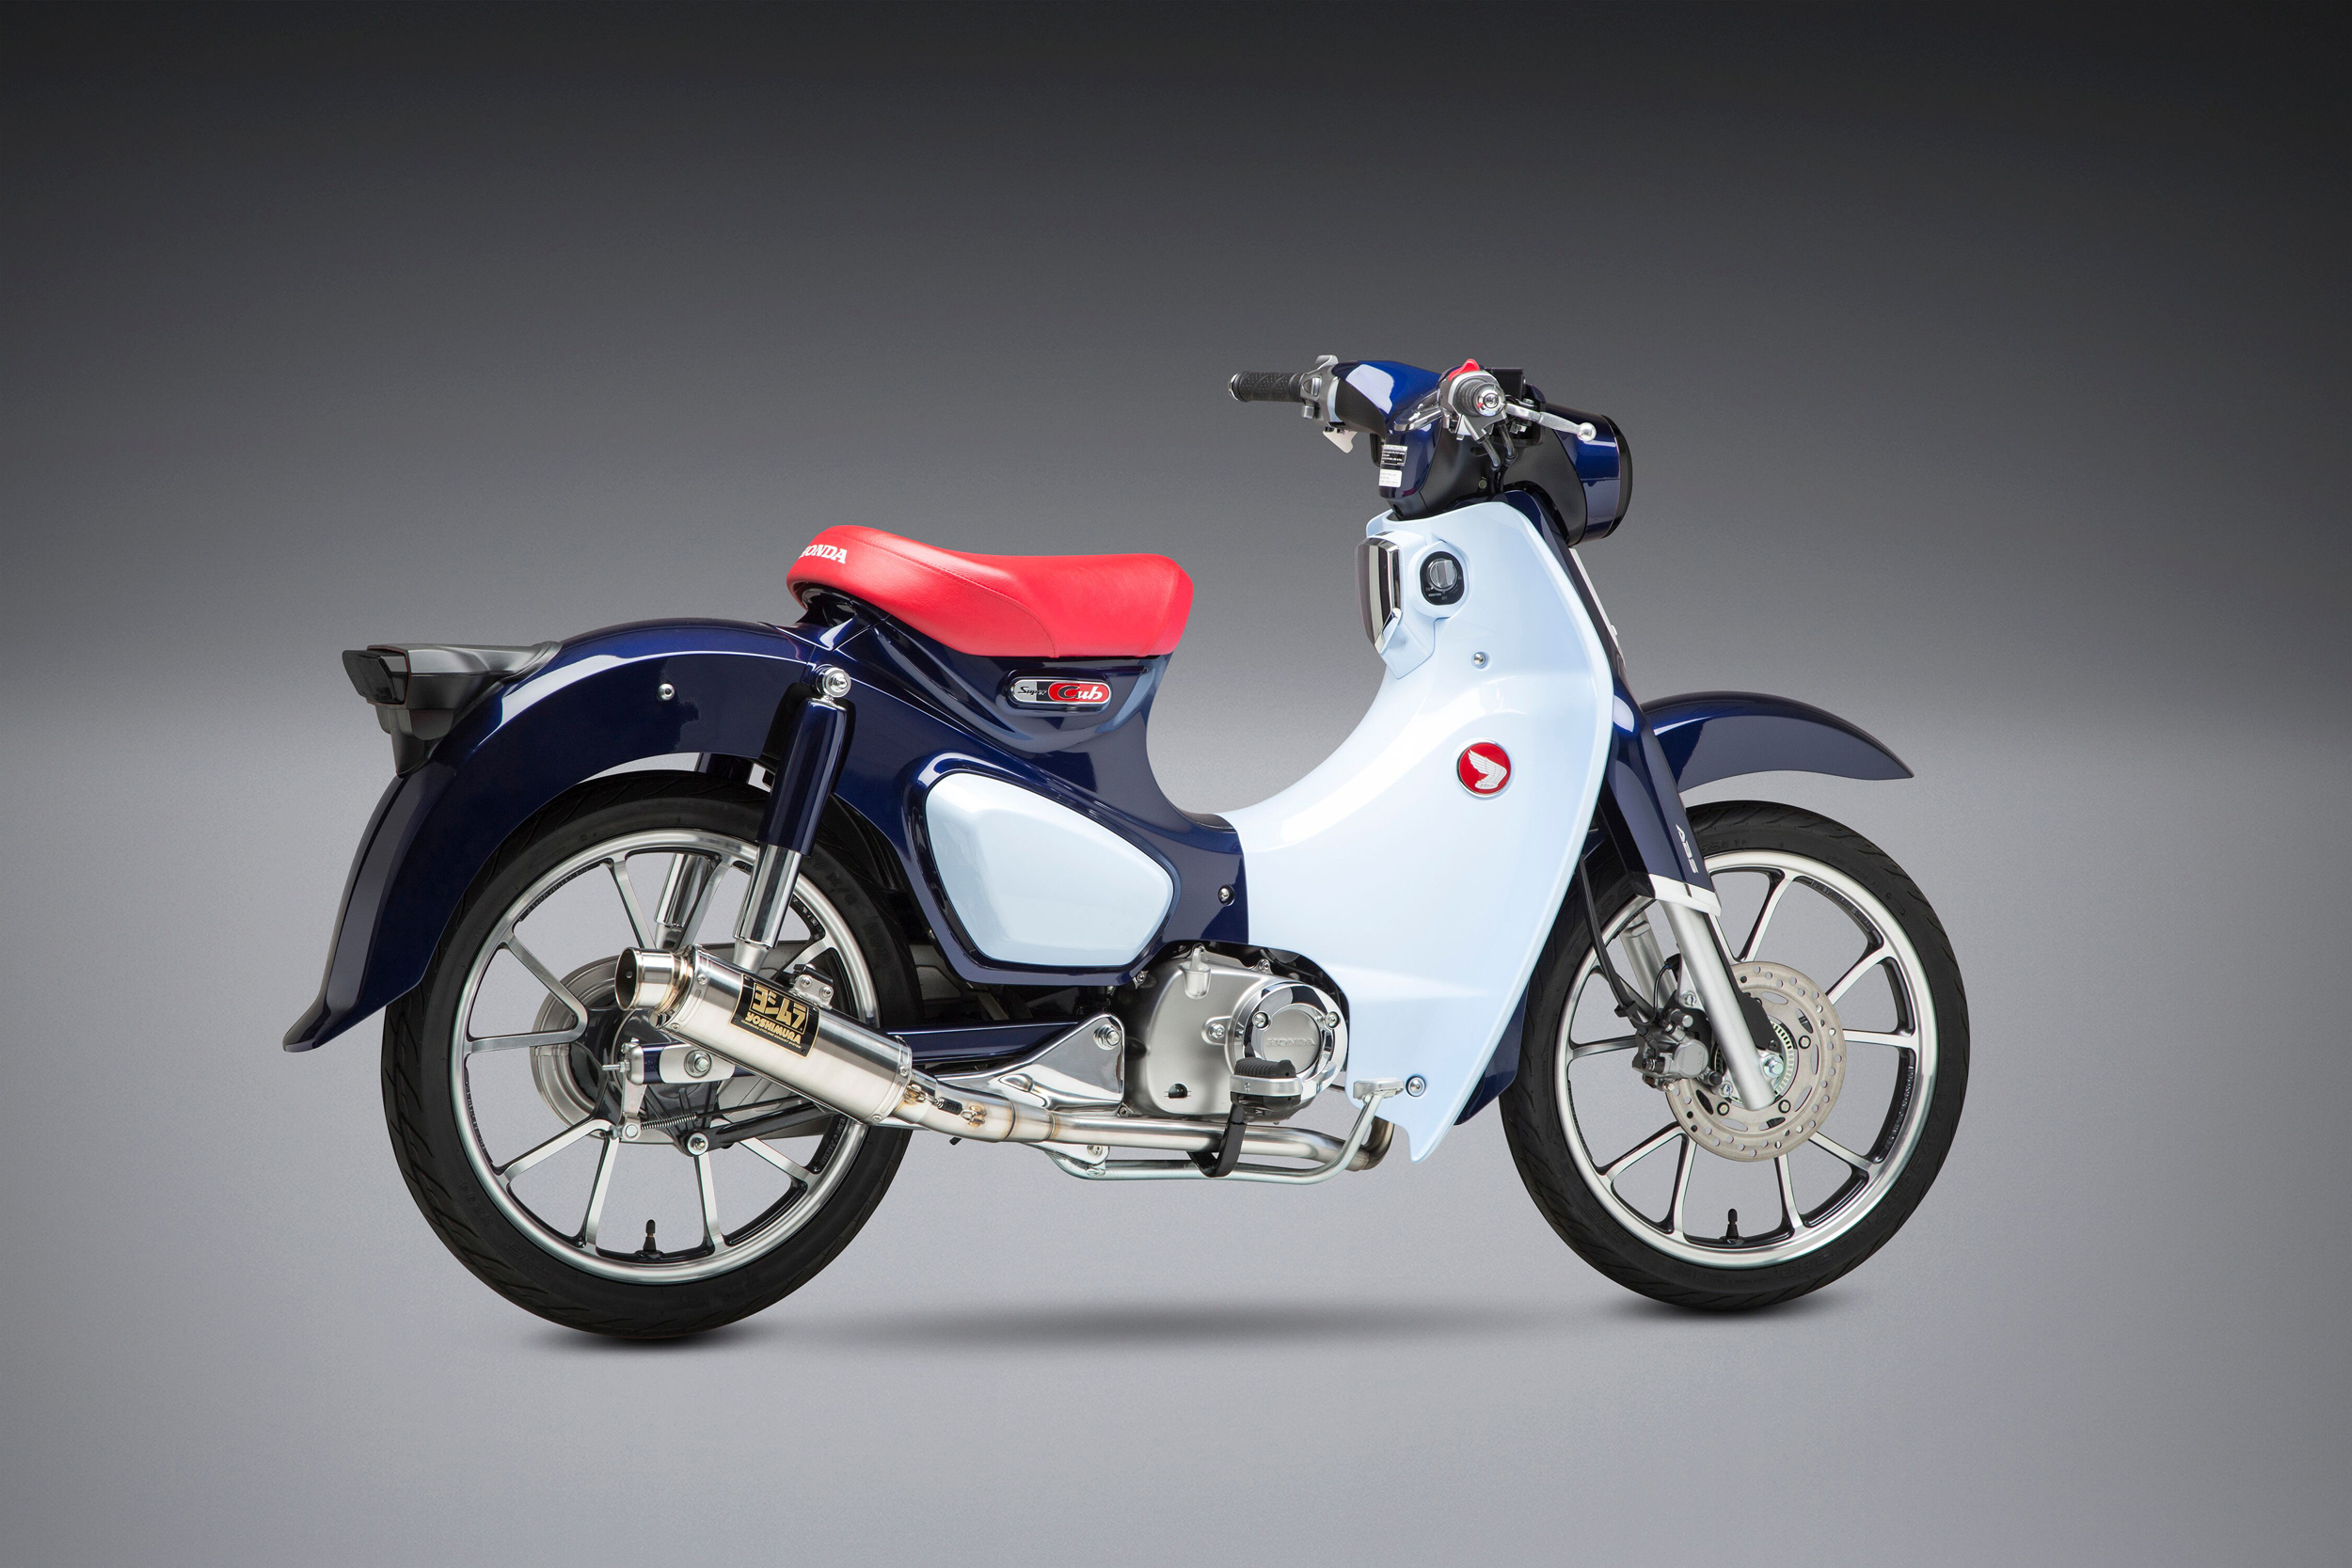 2019 Honda Super Cub with Yoshimura GP-Magnum stainless Race Series system